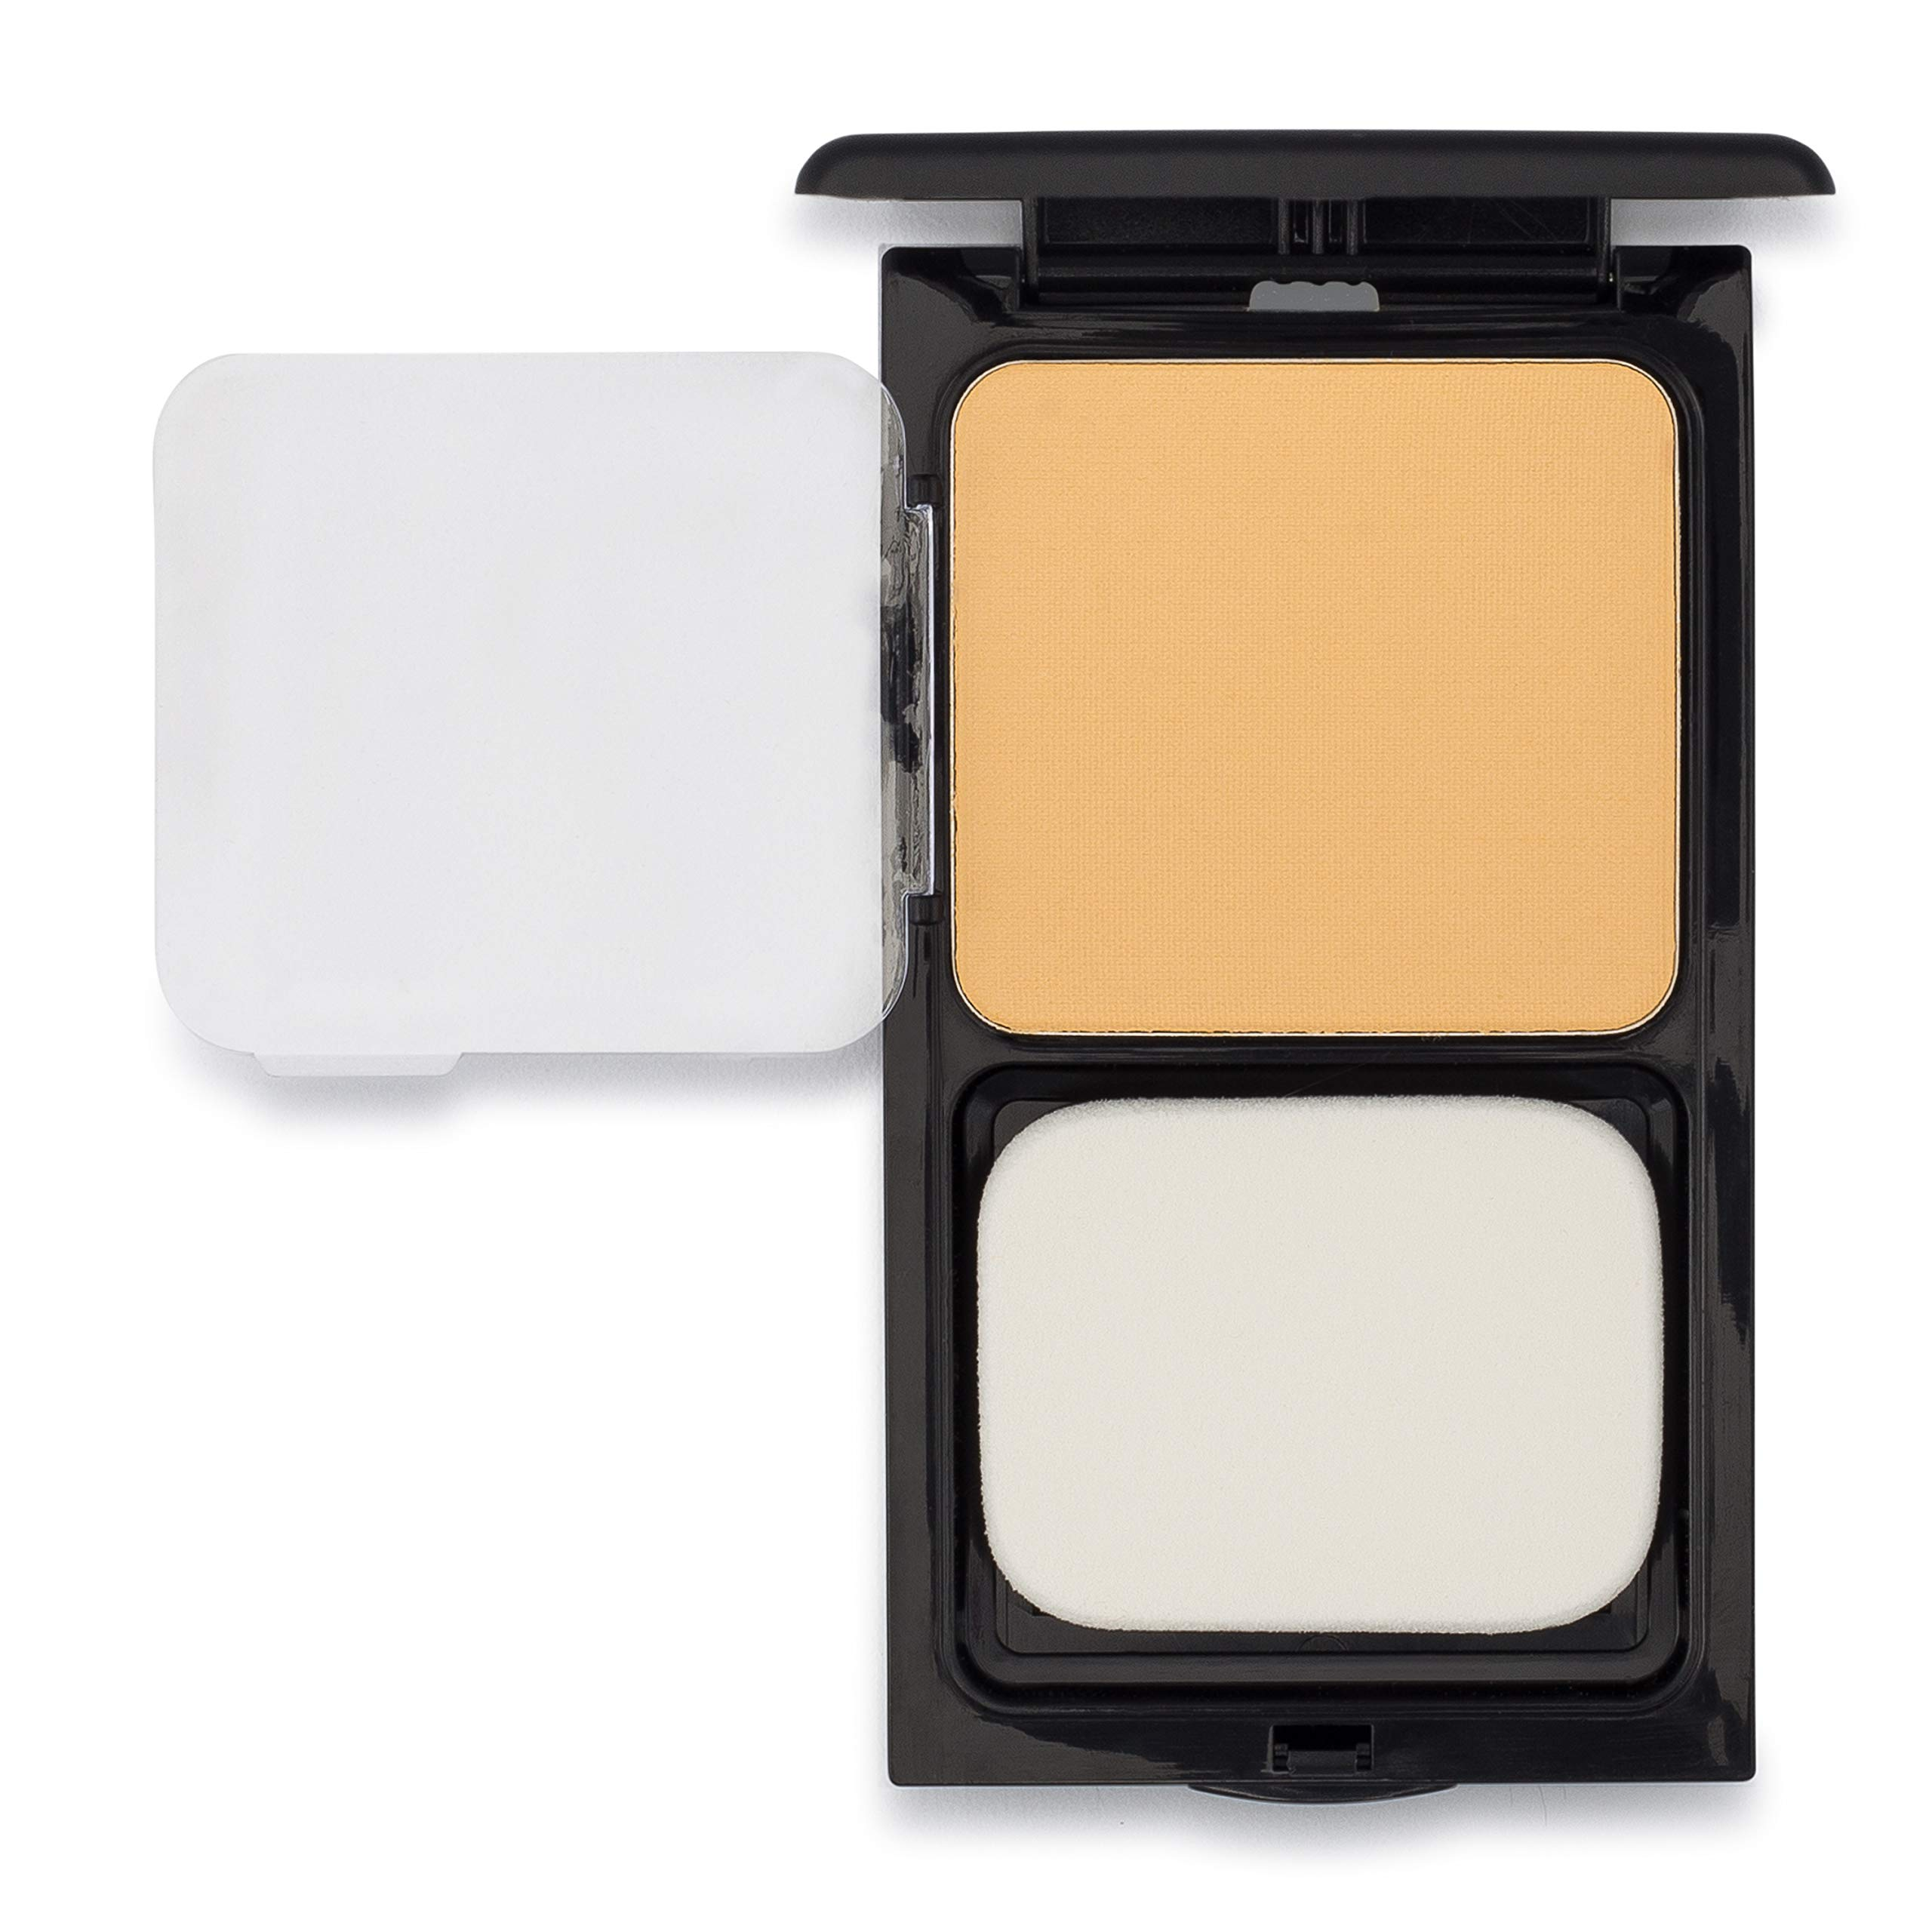 Amazon.com : Buttercup Compact by Sacha Cosmetics, Best Translucent Pressed Face Powder for Setting Makeup Foundation with no Flashback for all Skin Tones, ...